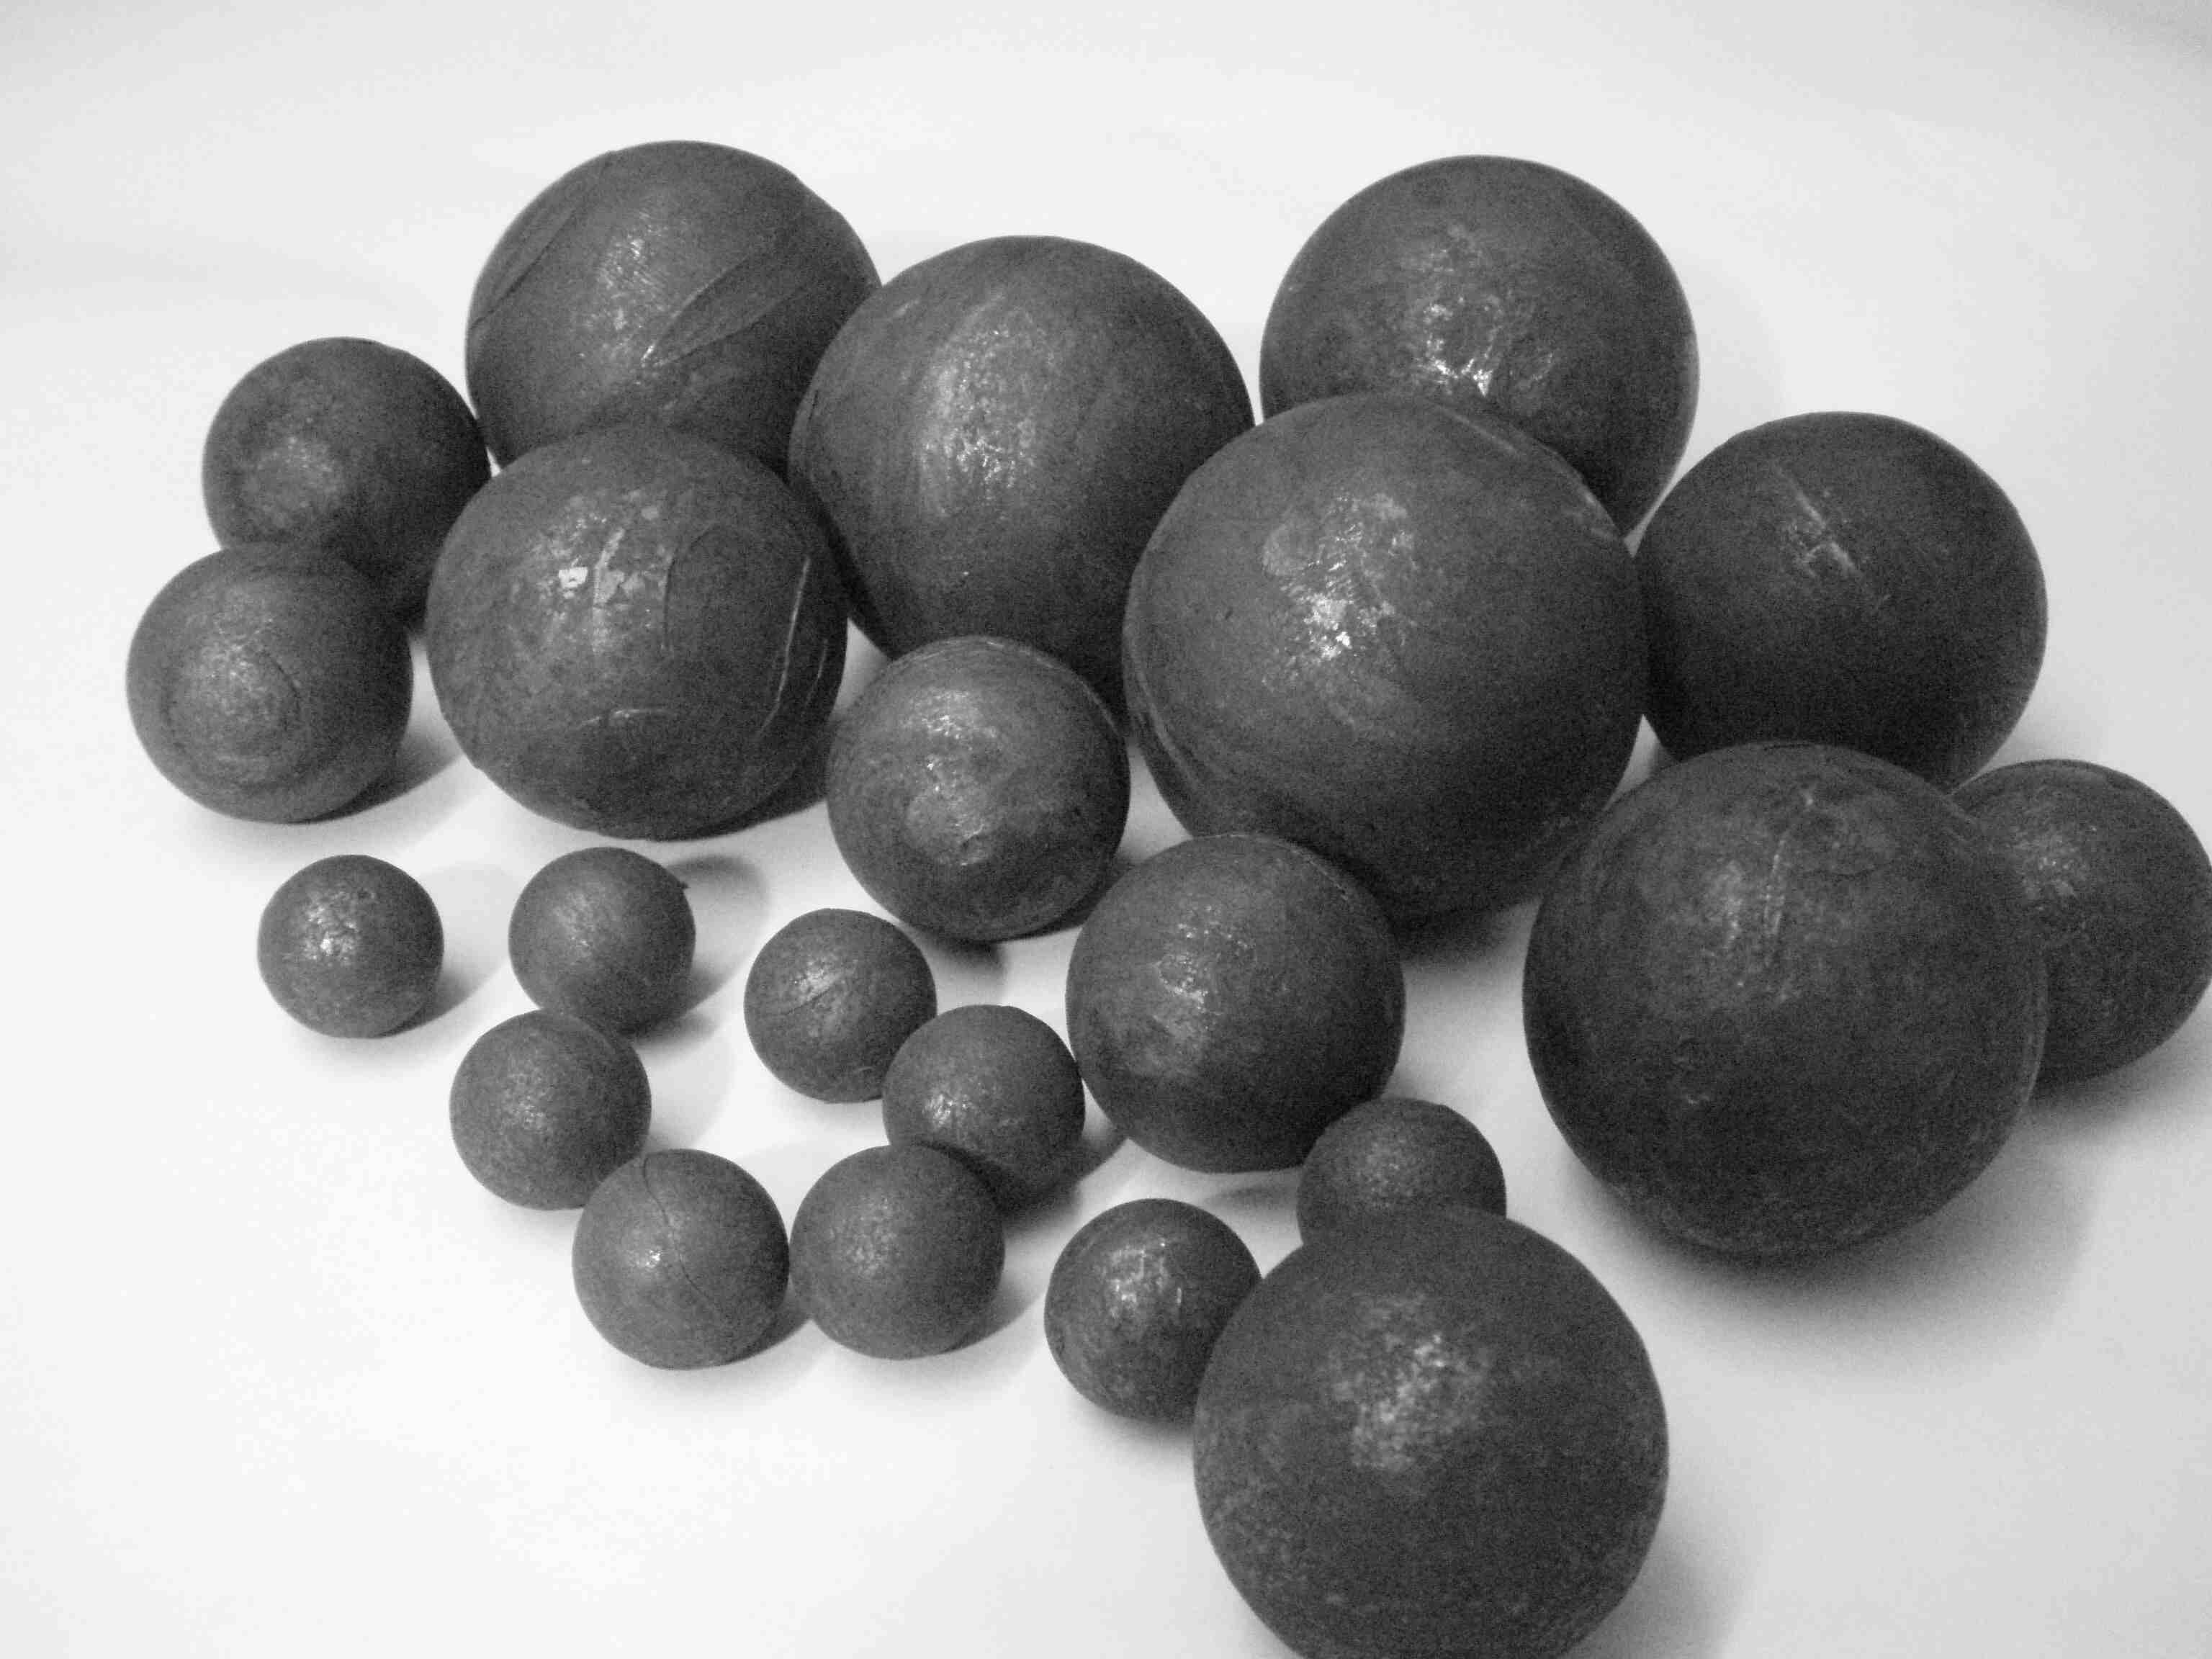 Grinding_Steel_Balls___Forged.jpg